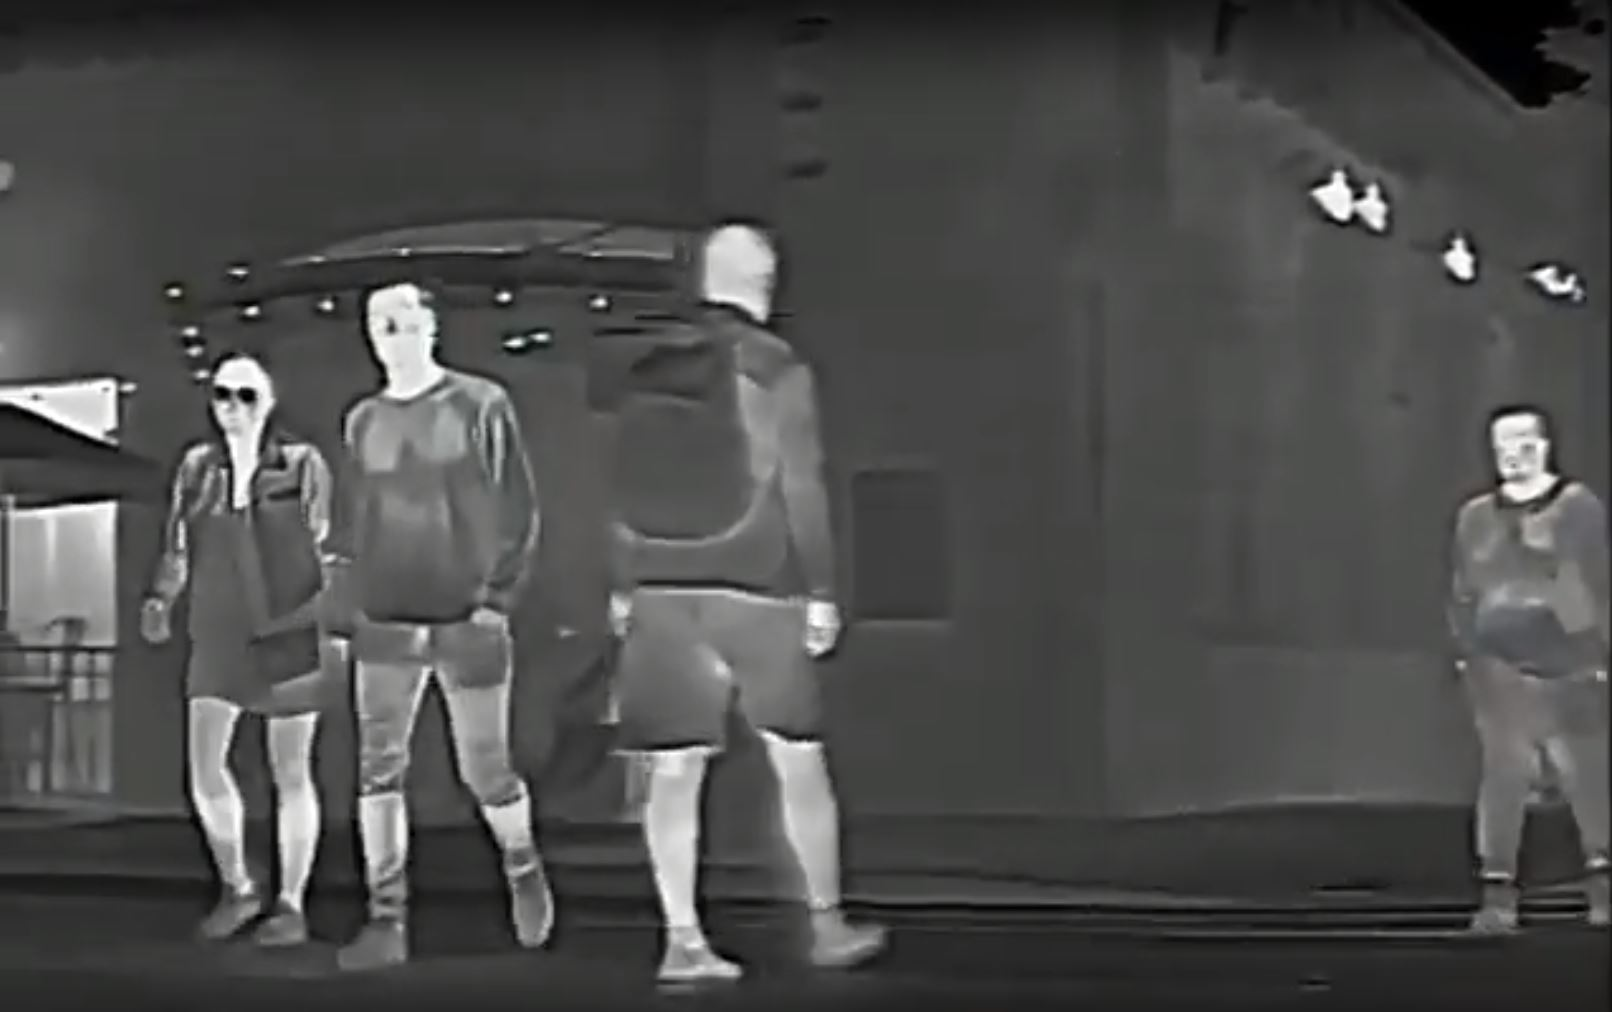 thermal image pedestrians